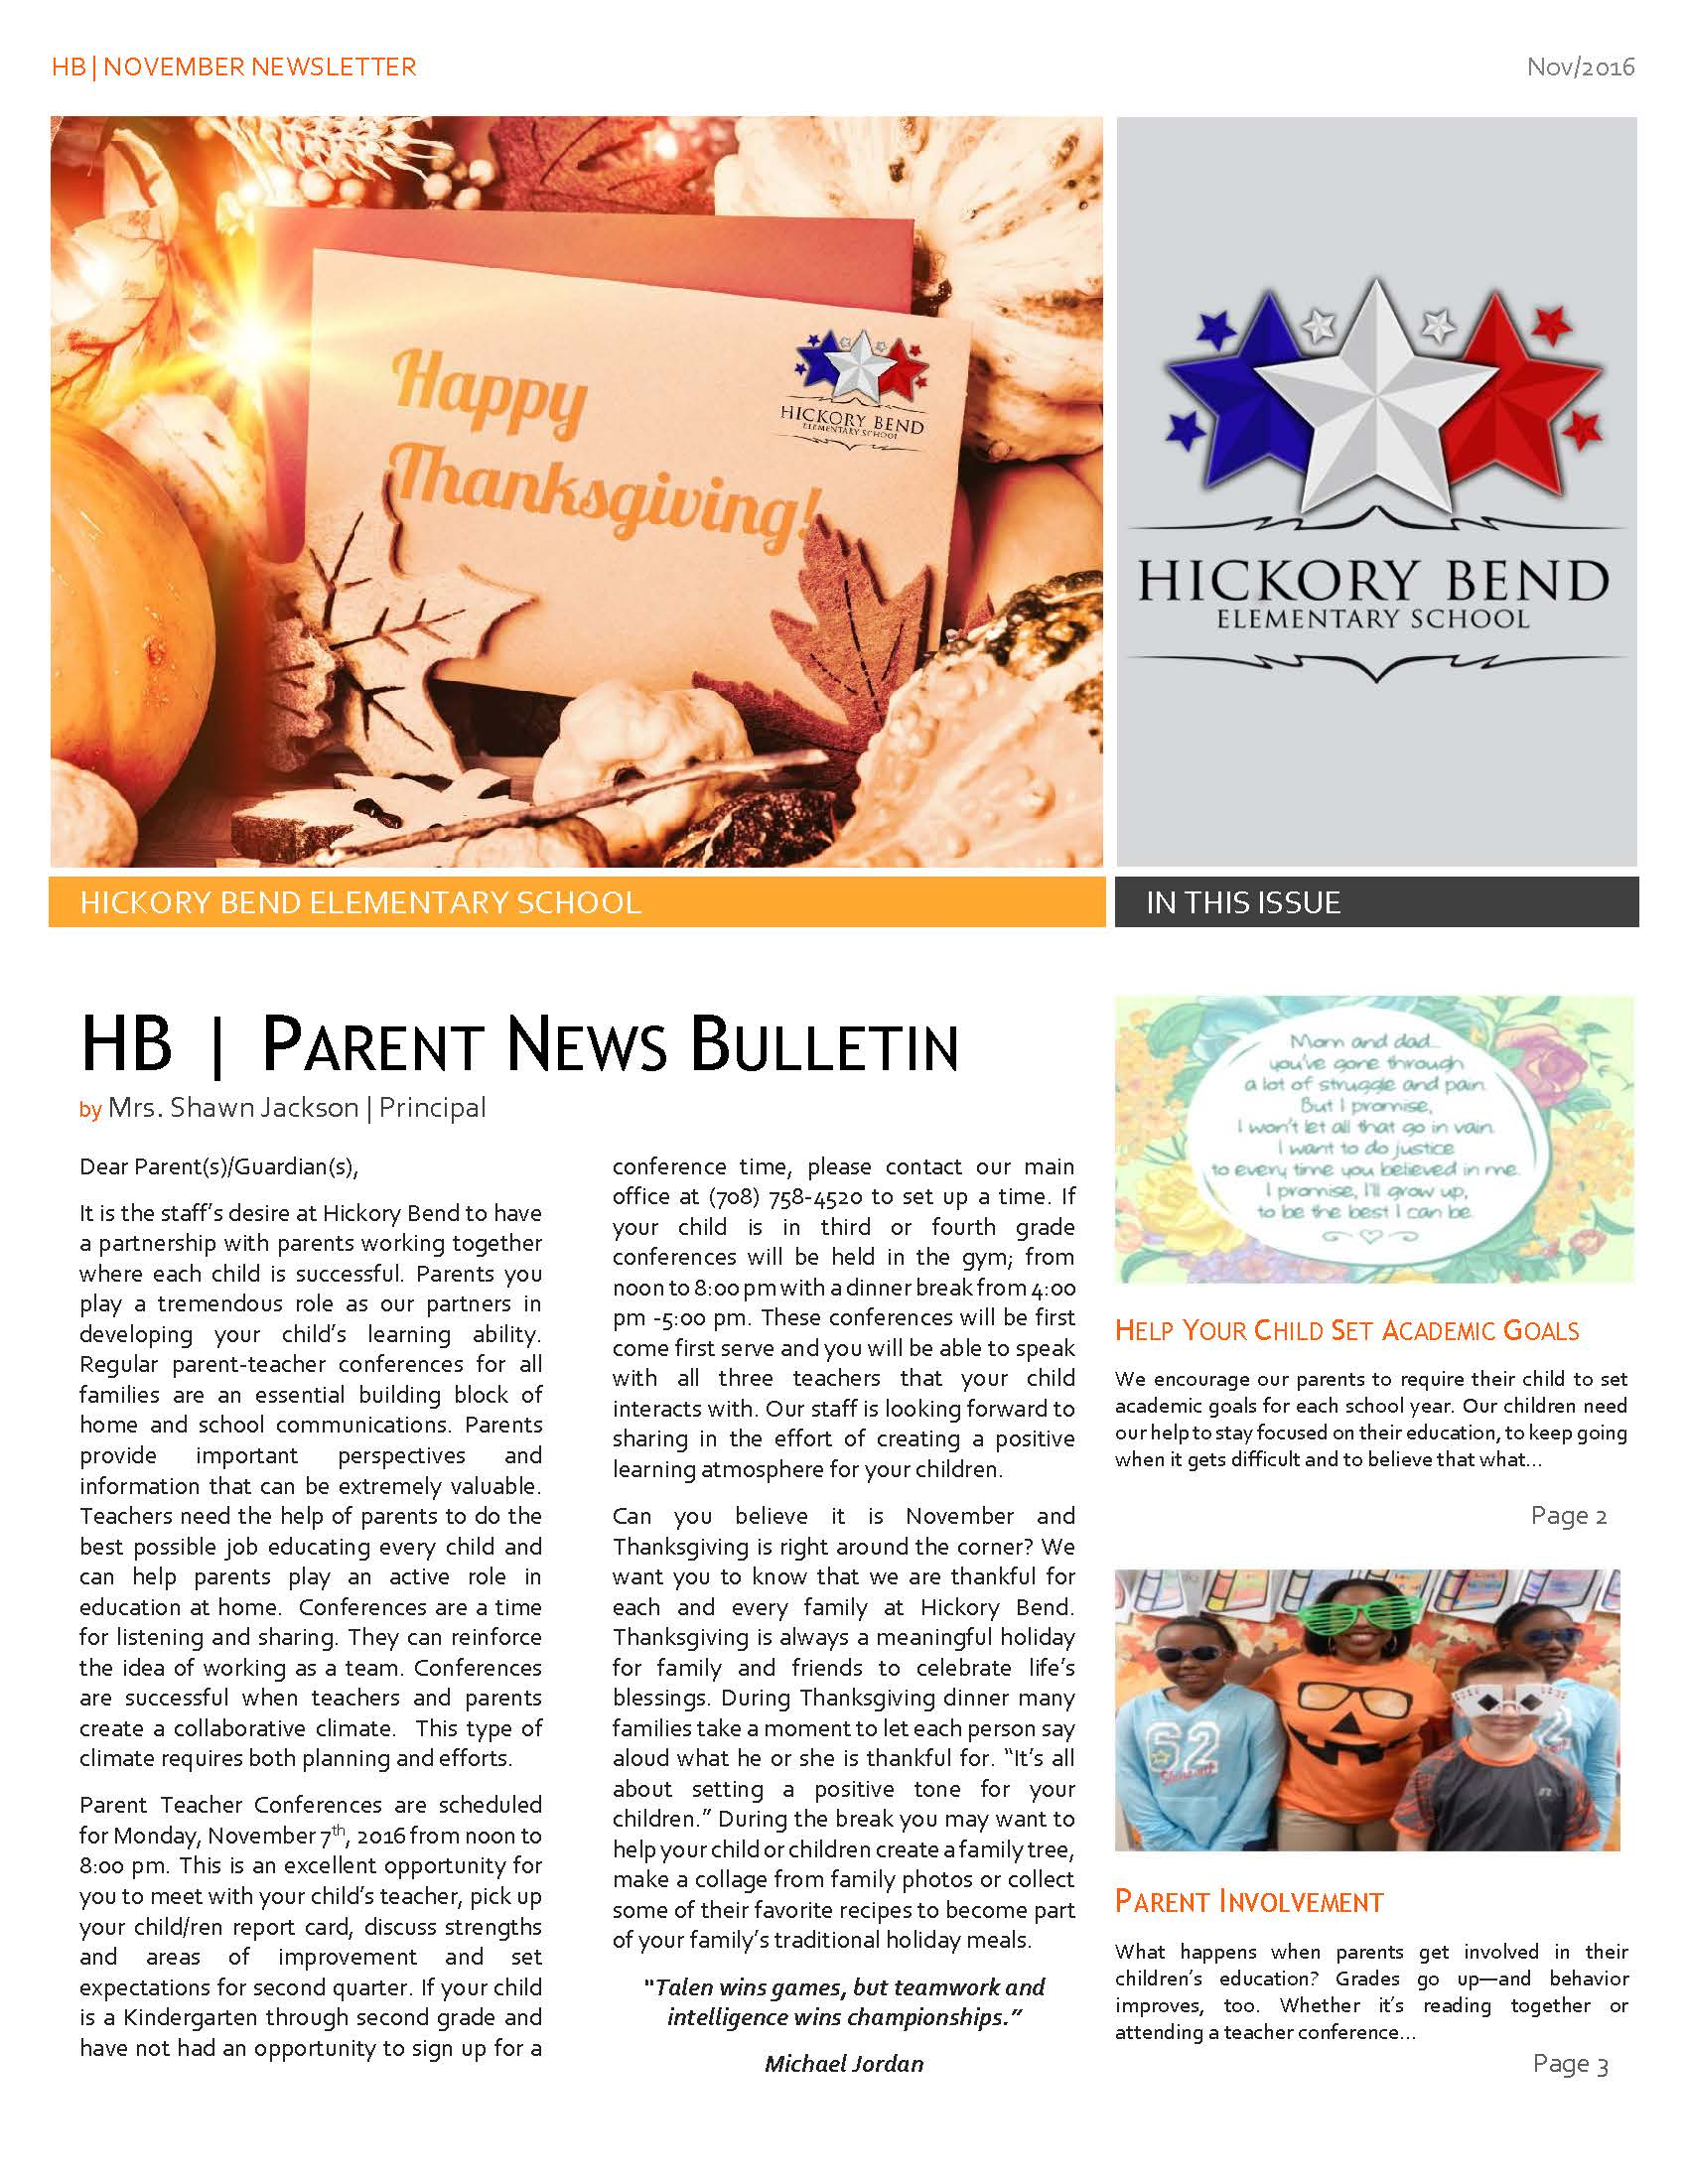 hb_nov_newsletter_page_1